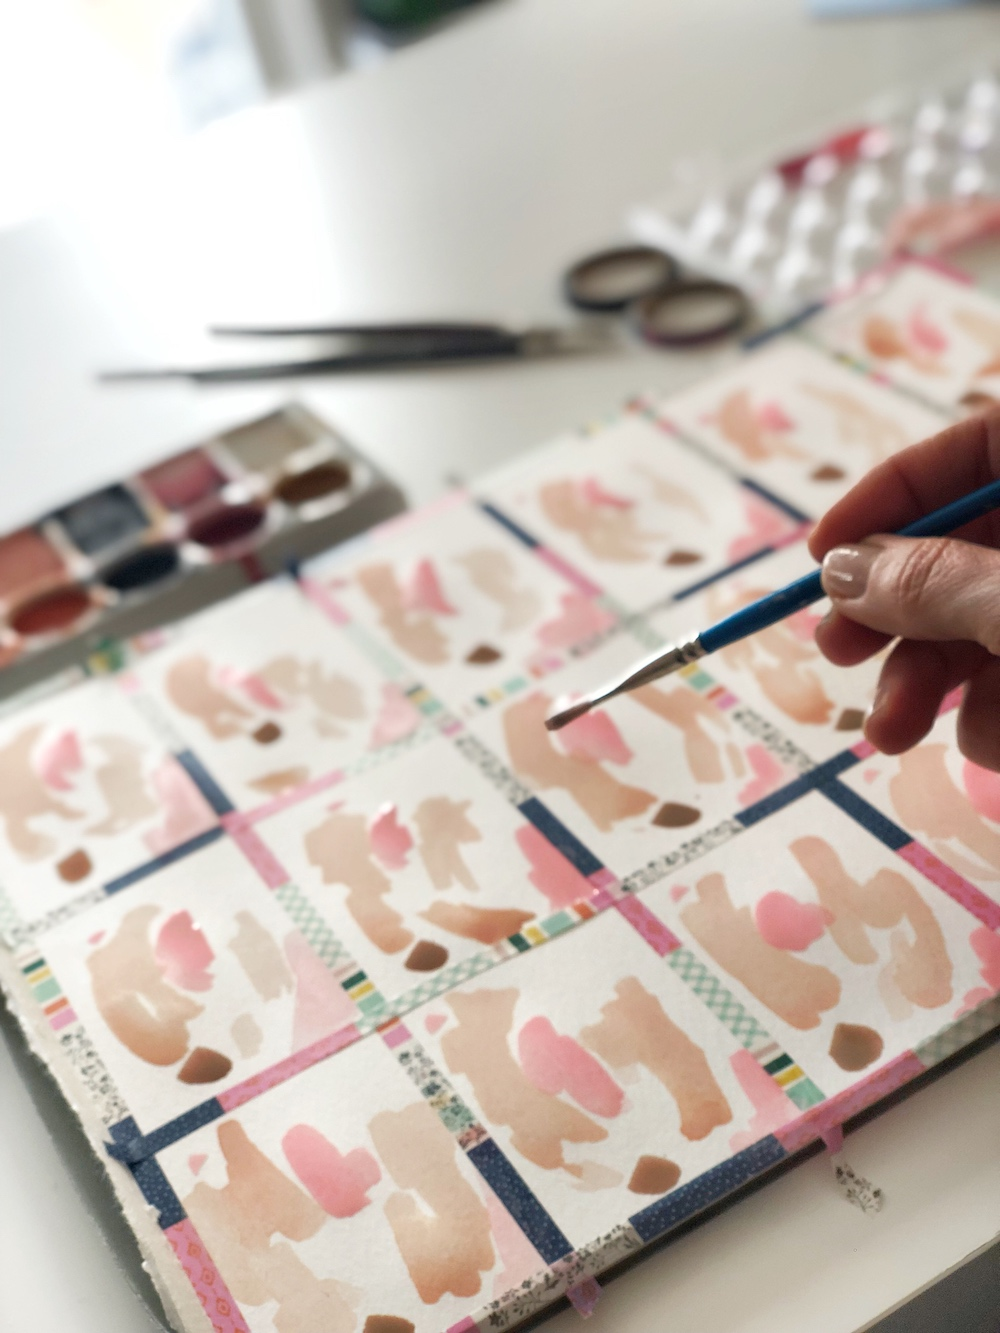 Use watercolor paints that are in the same color family